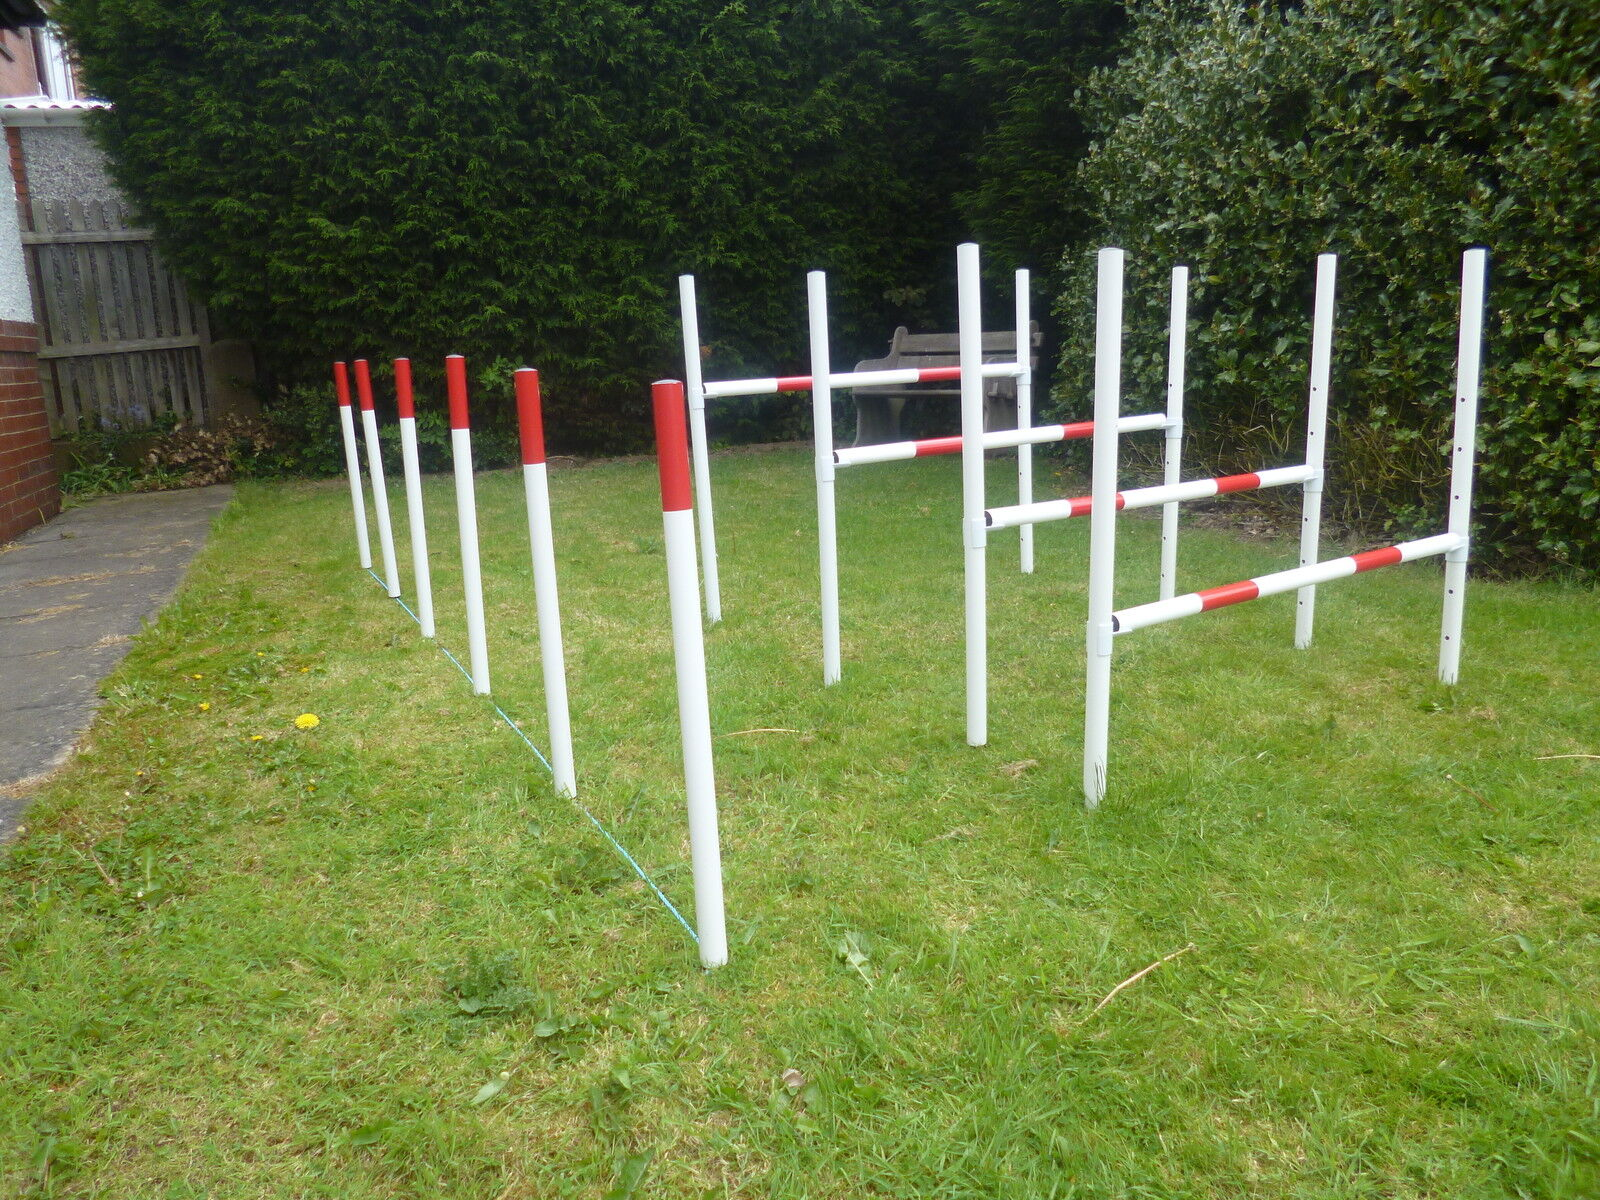 Johns agility dog training, obedience, pet supplies, competition training.